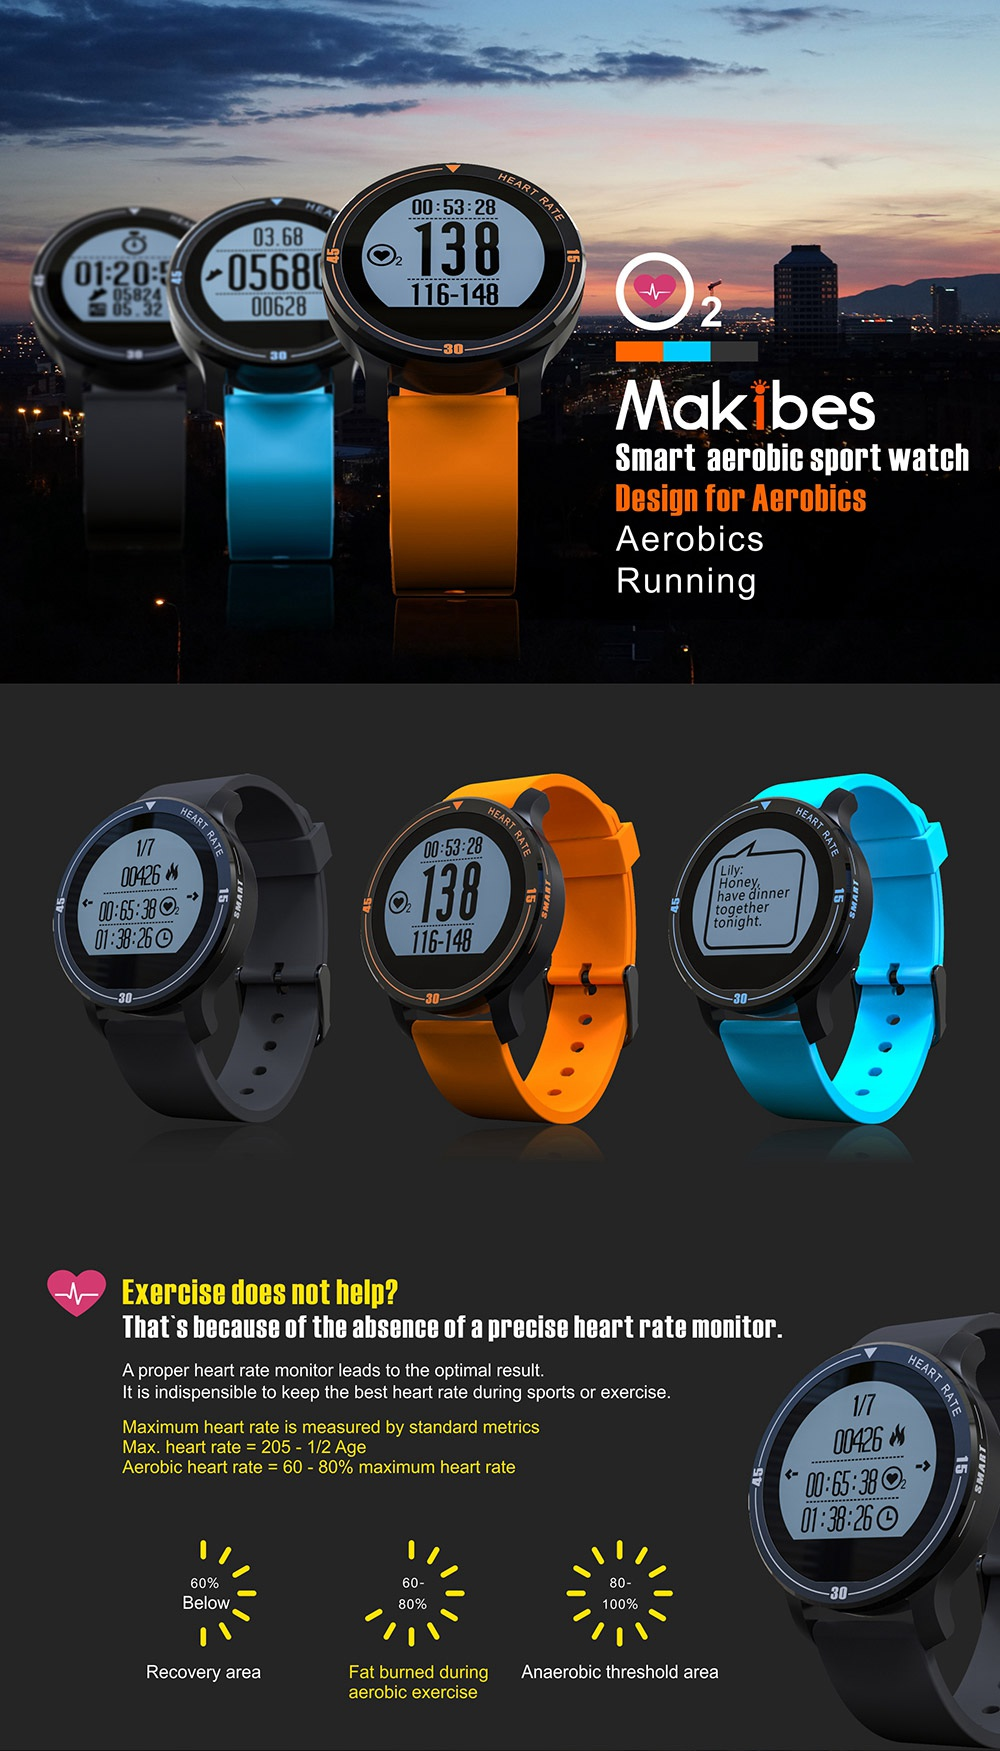 MAKIBES AEROBIC A1 SMART SPORTS WATCH BLUETOOTH DYNAMIC HEART RATE MONITOR SMARTWATCH S200 231407 15